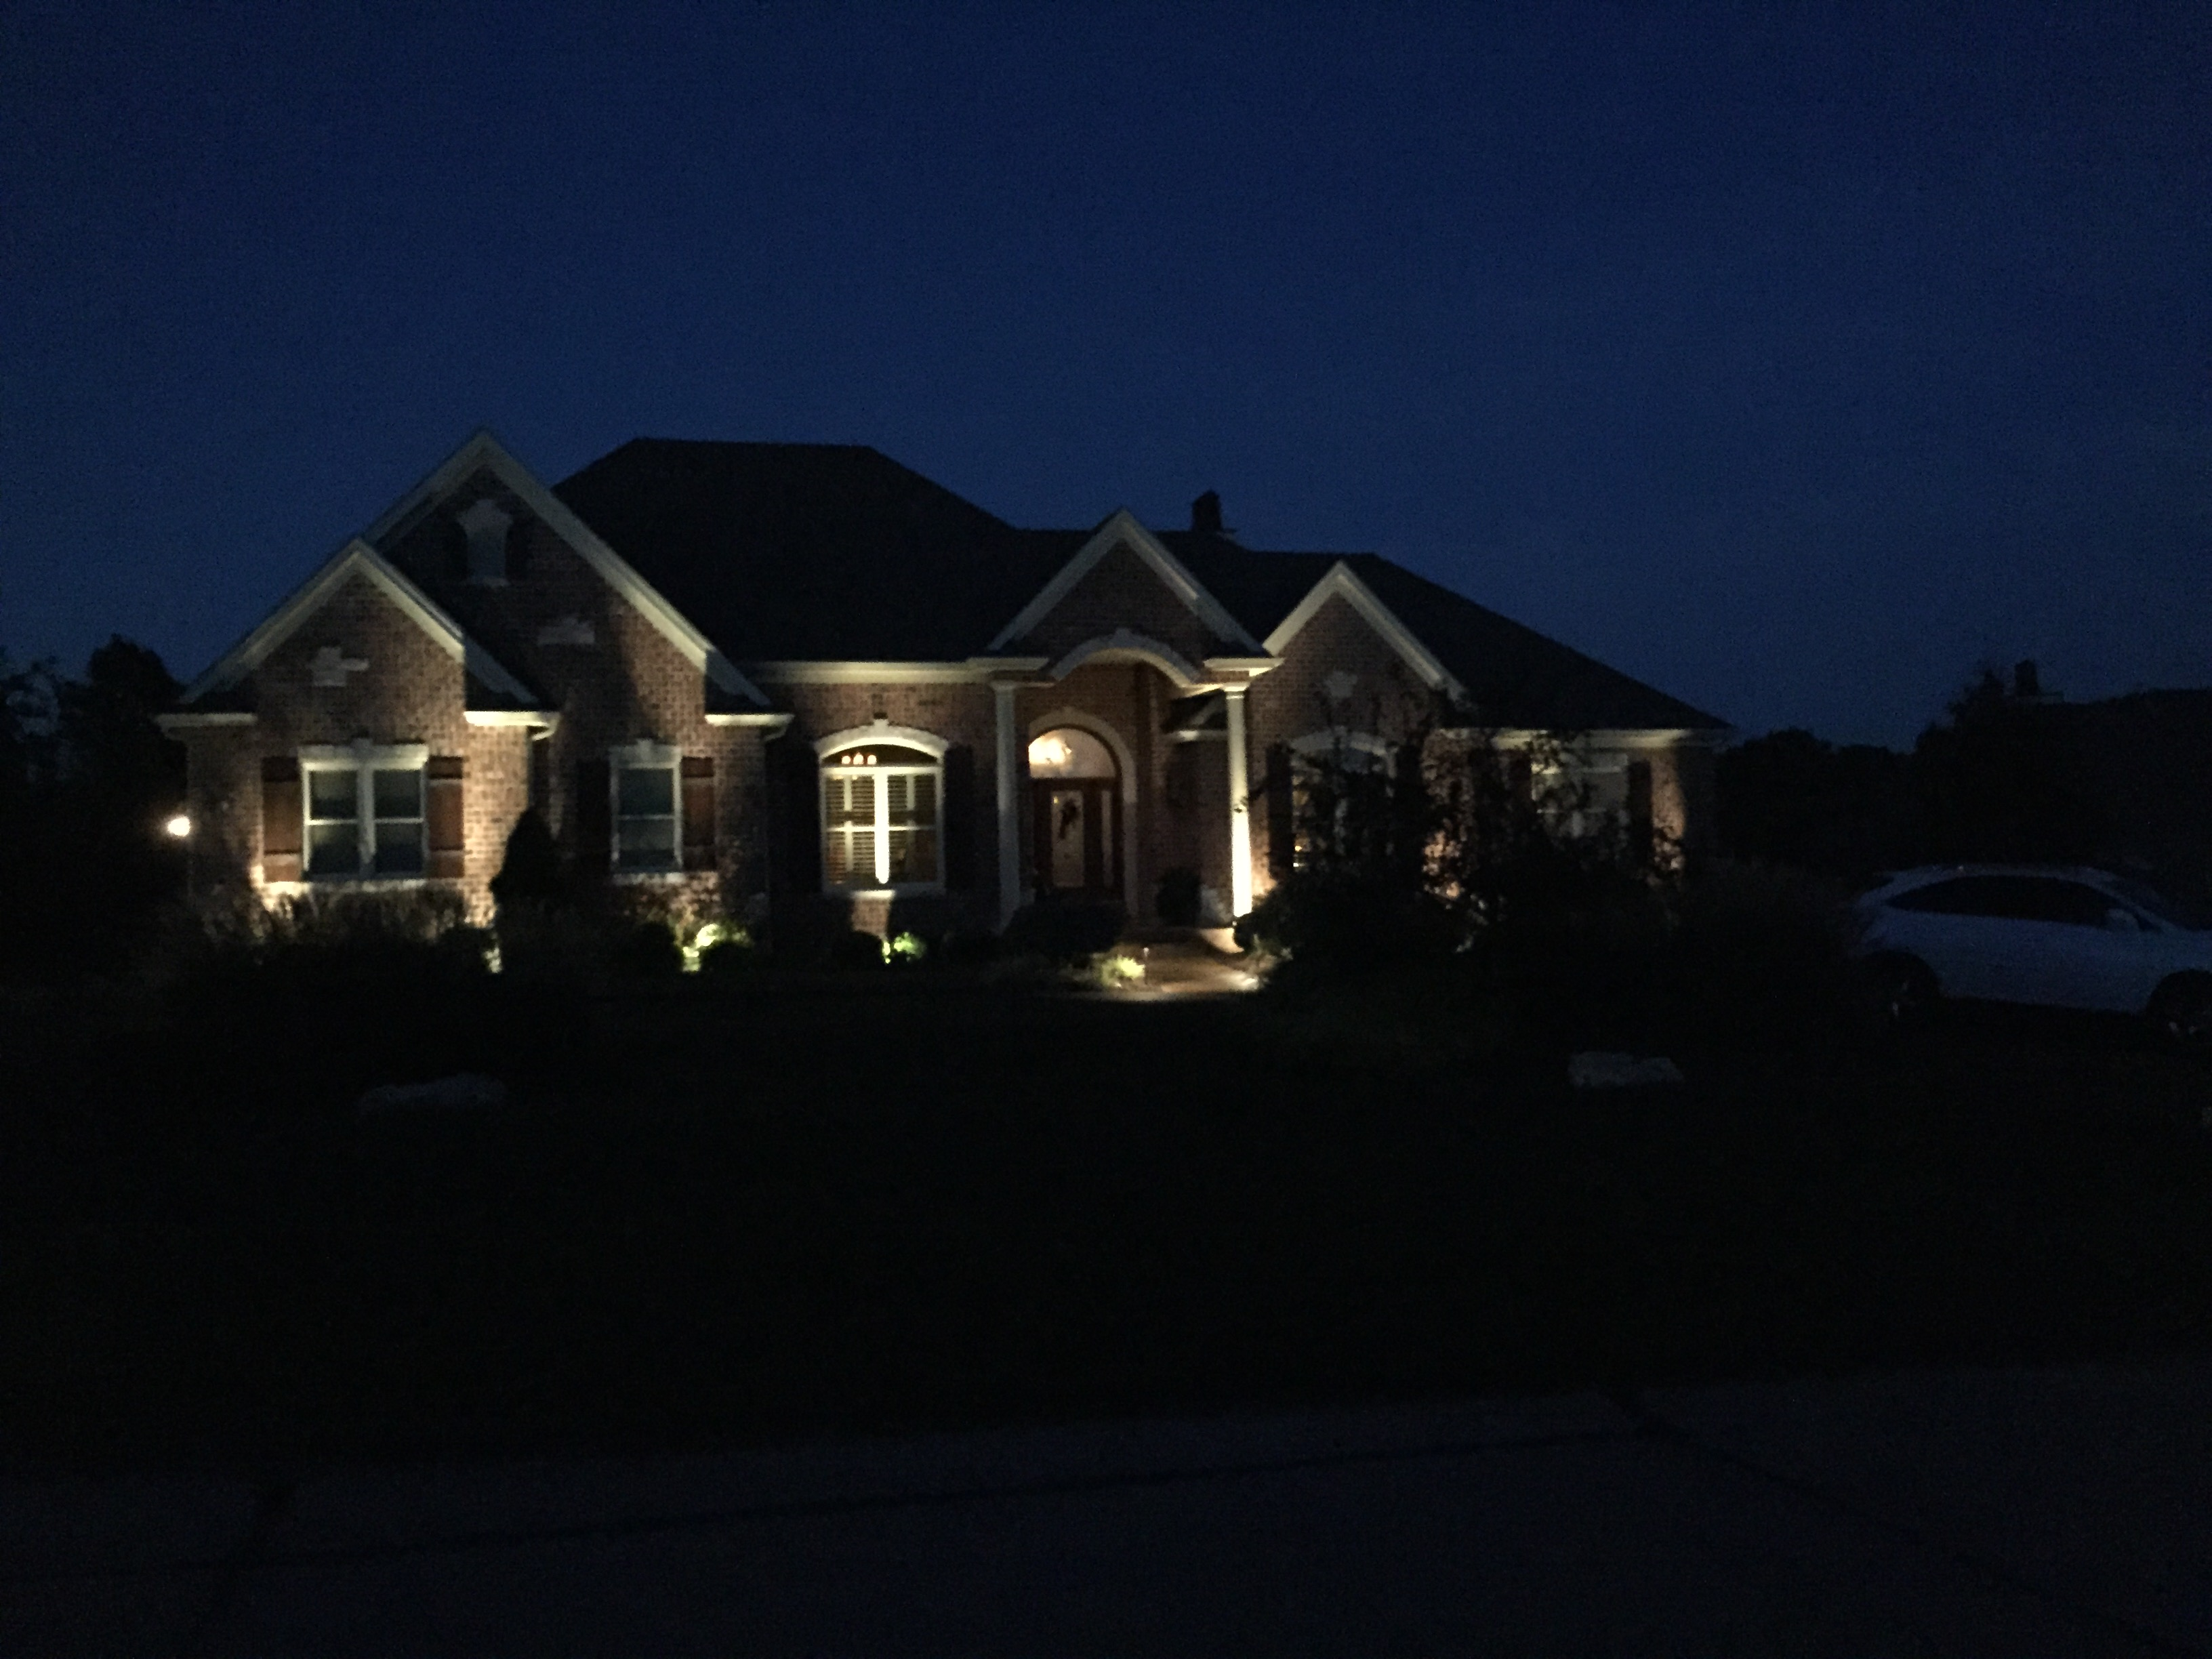 House at Night with Exterior Lighting